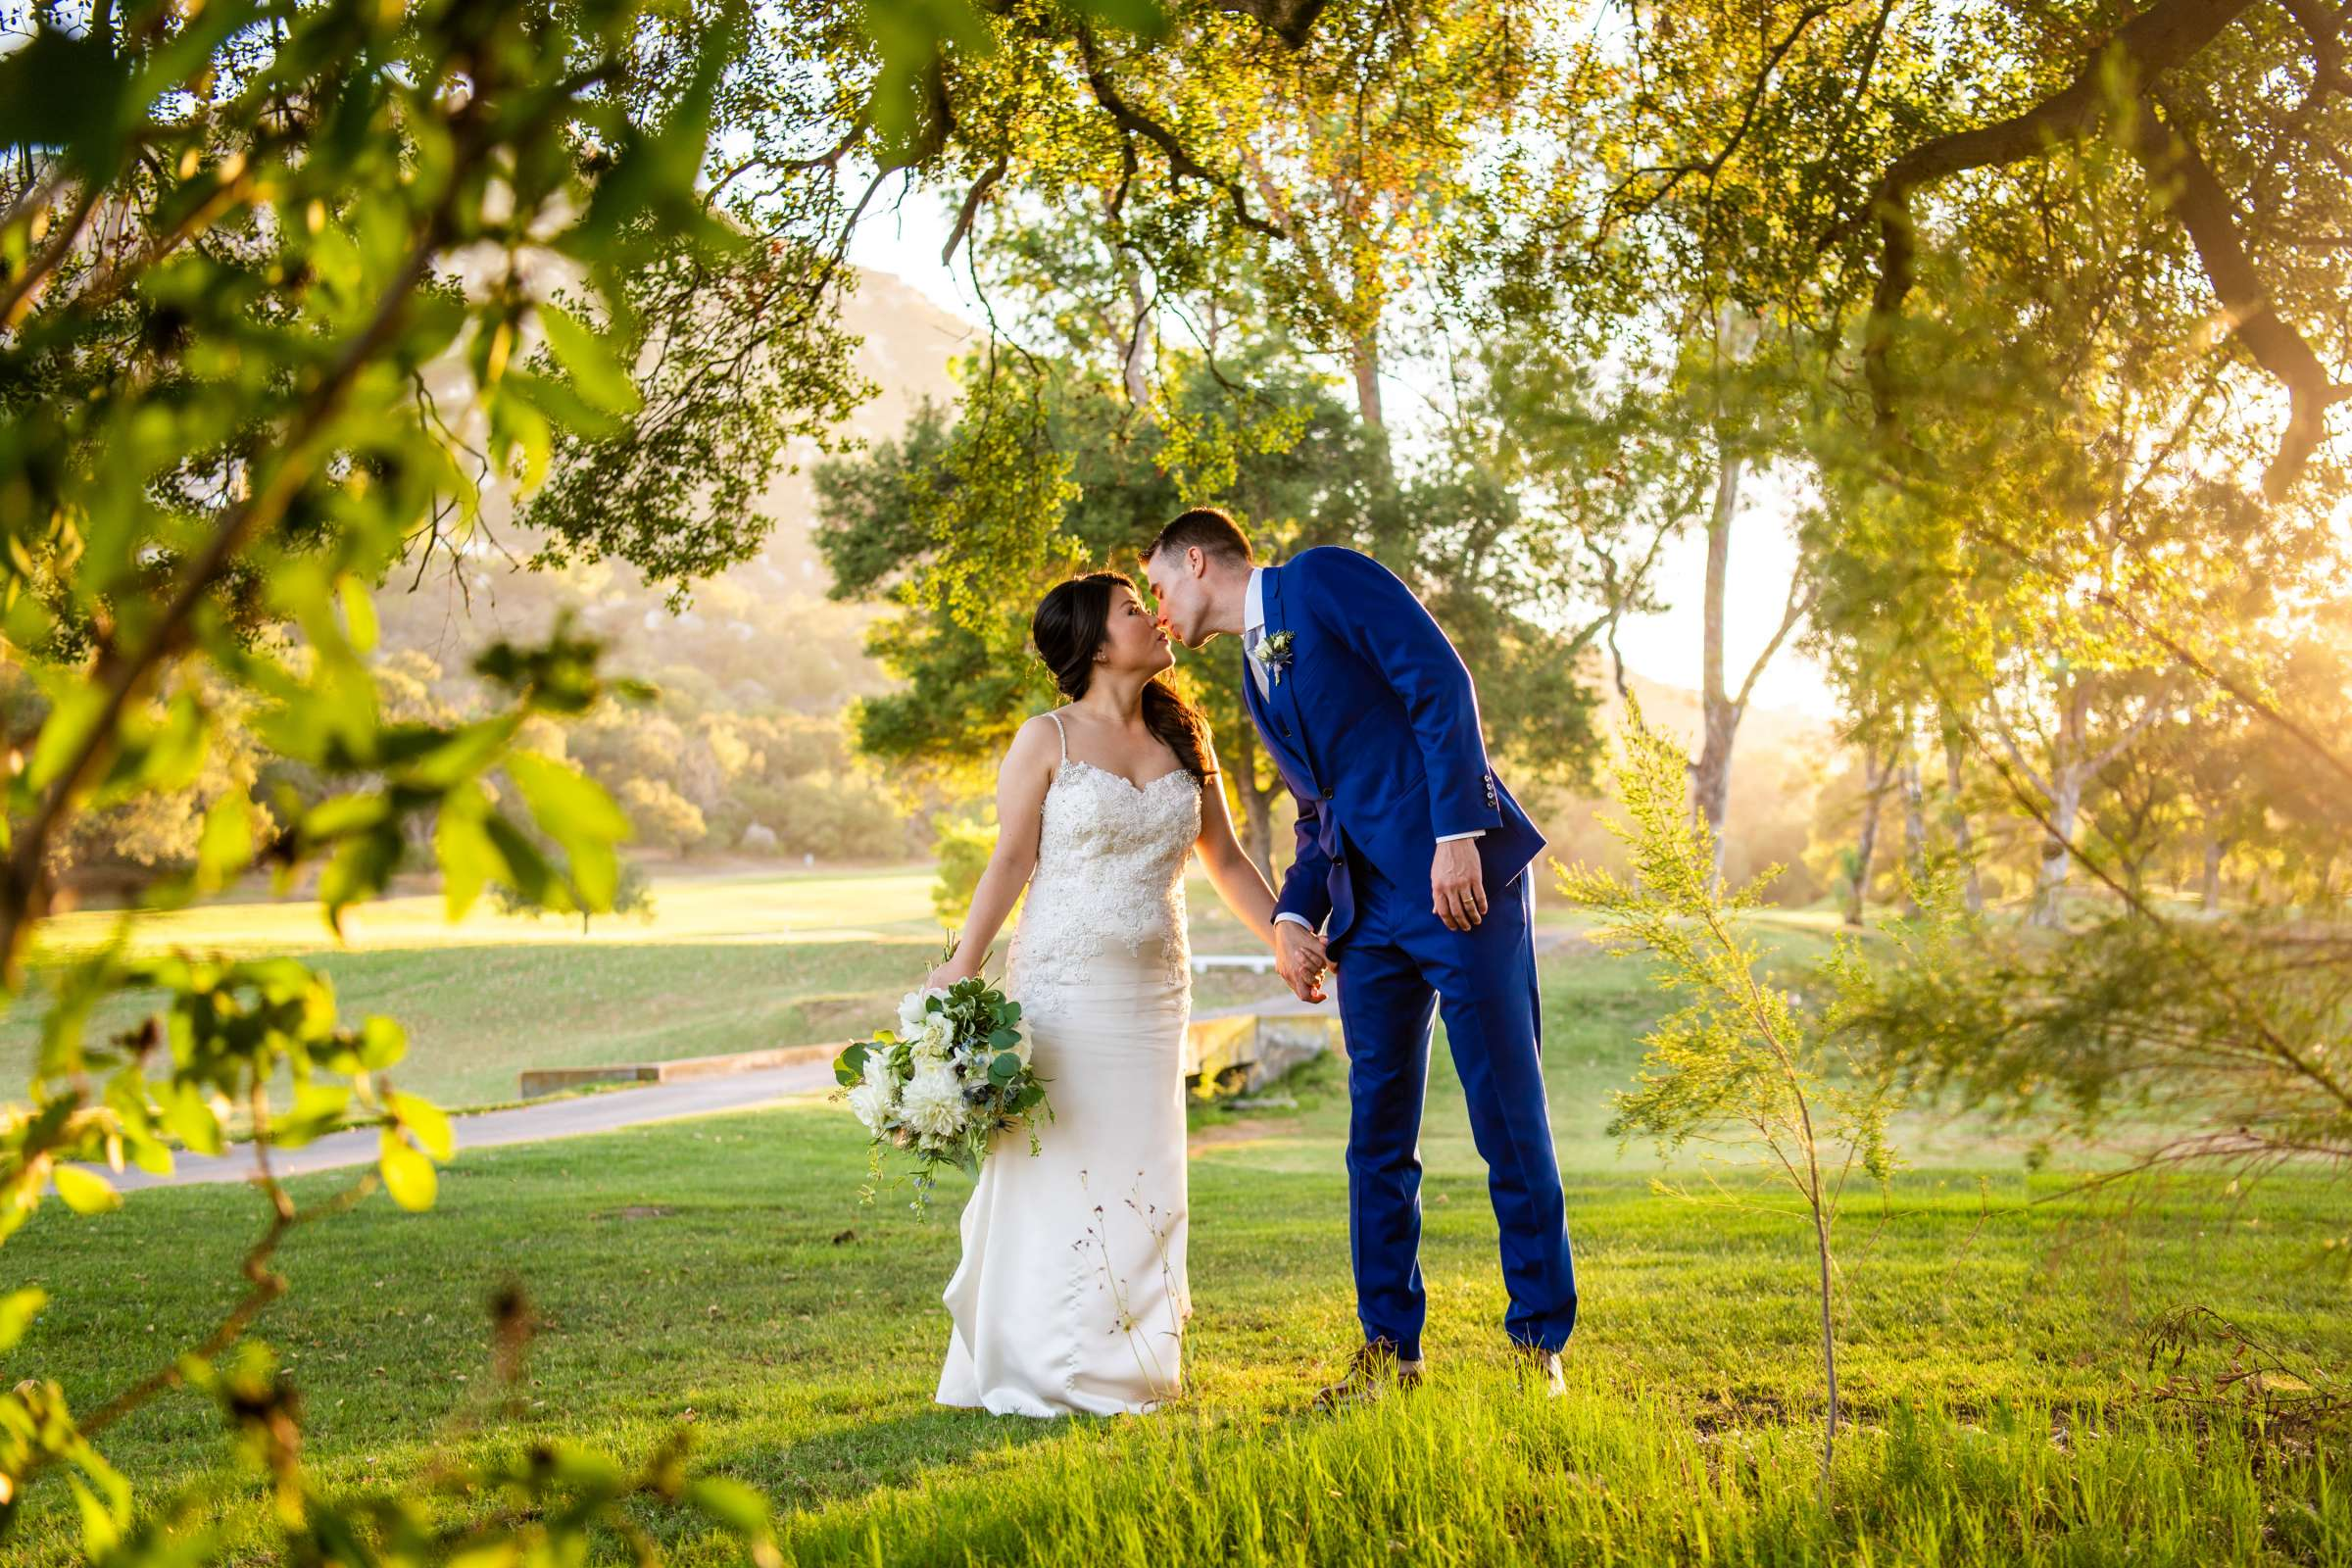 Mt Woodson Castle Wedding coordinated by I Do Weddings, Aya and Jared Wedding Photo #486995 by True Photography